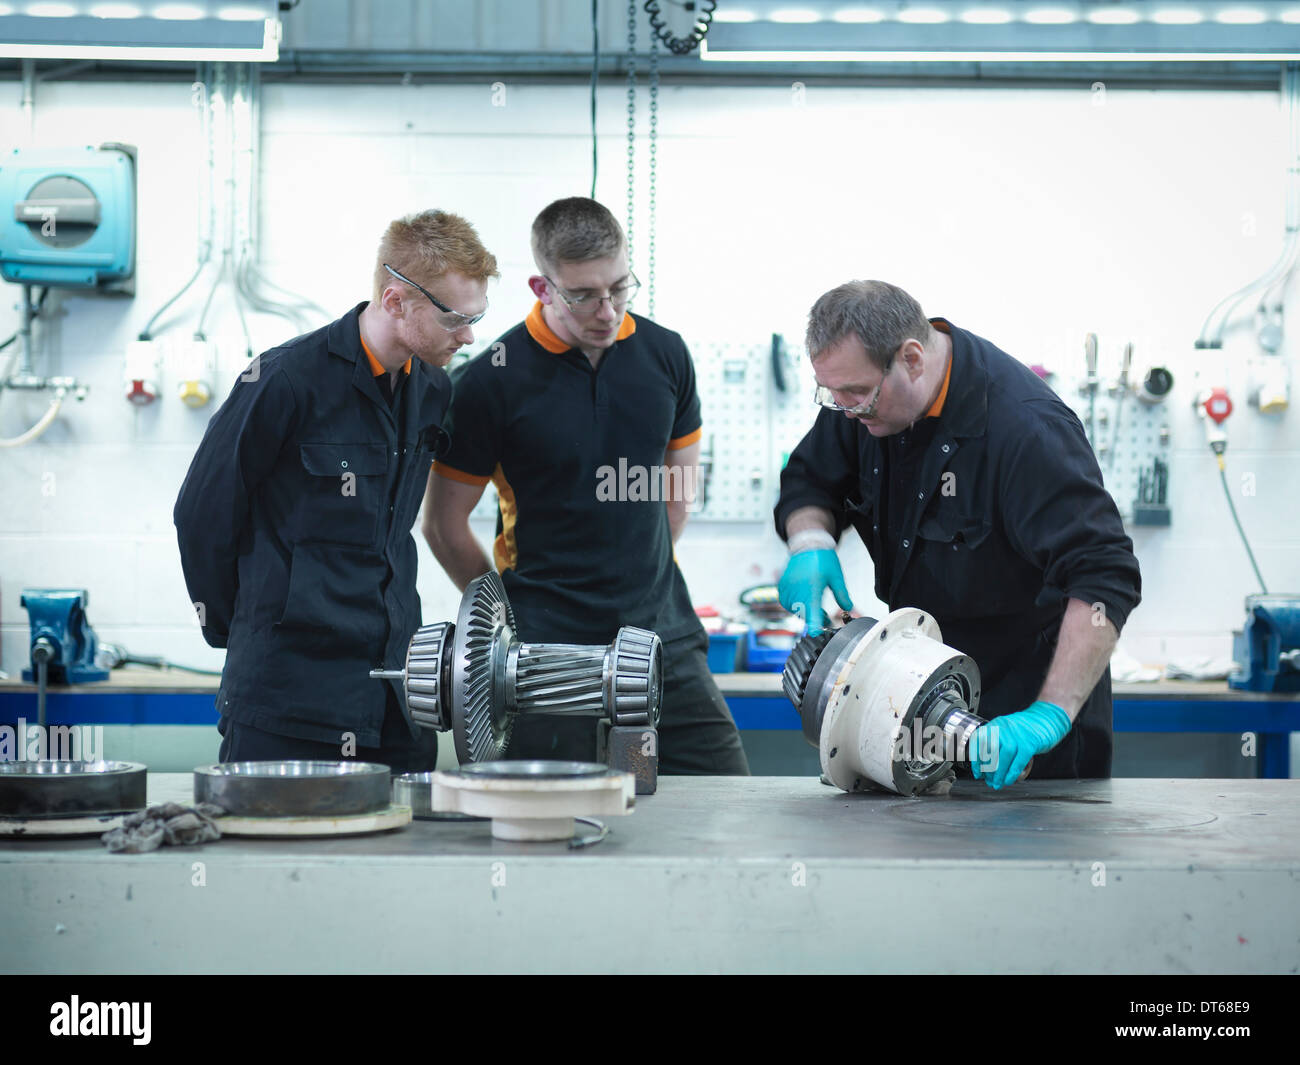 Engineer teaching apprentices in engineering factory - Stock Image